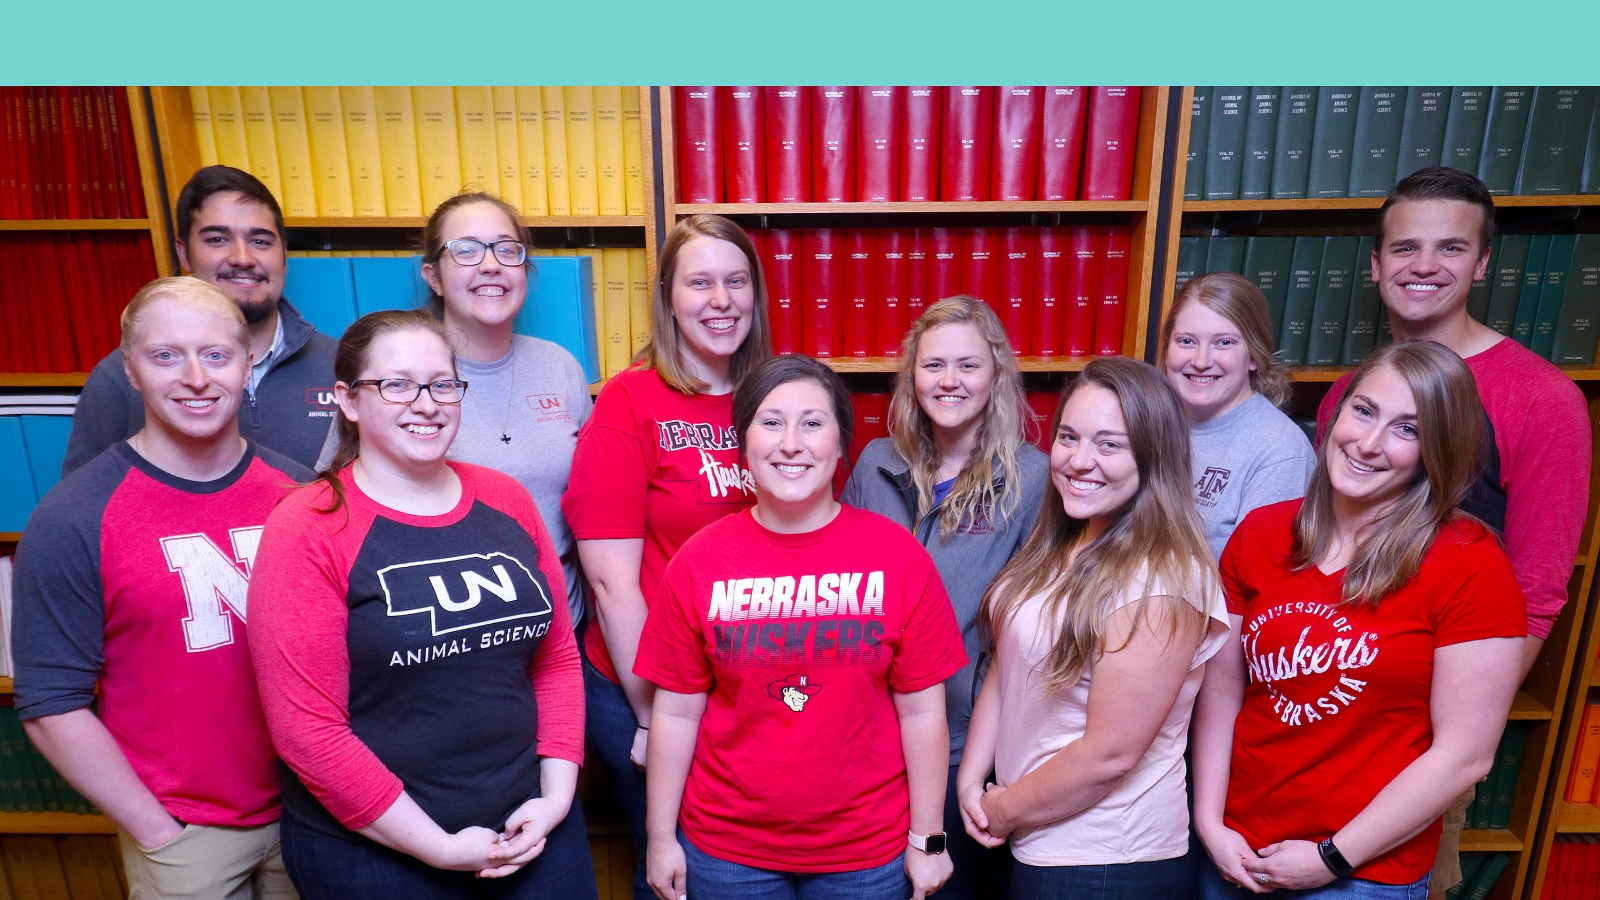 Animal Science Graduate Student Association members pose for a picture